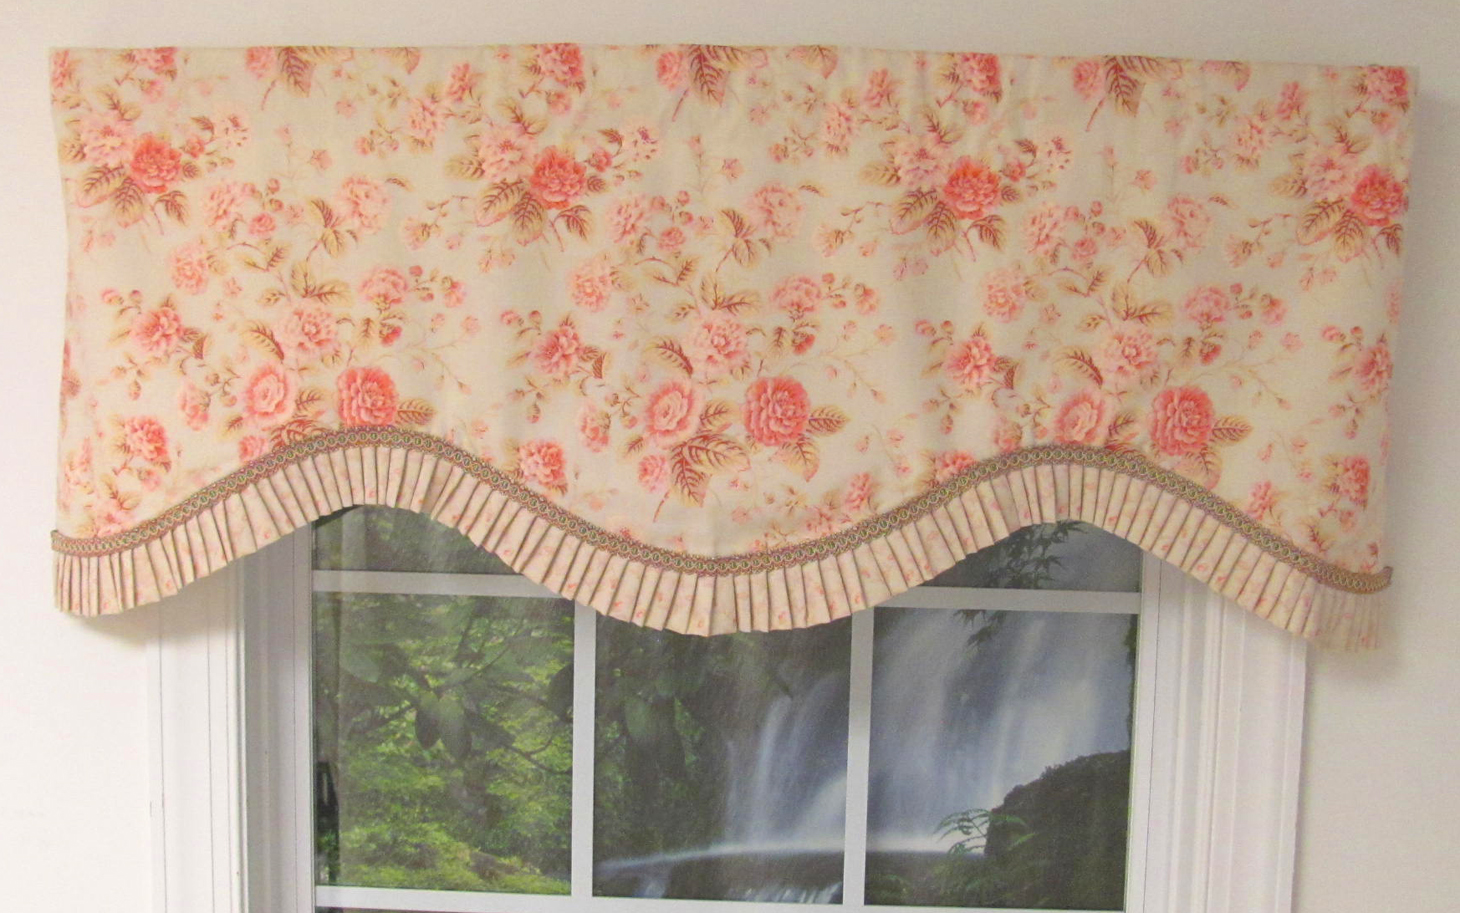 interior penney elegant also drapes curtain mural for white jcpenney jcp plus kitchen decor baseboard wall and at ideas jc with valances curtains dark home outstanding new lace valance penneys blind of attractive sears